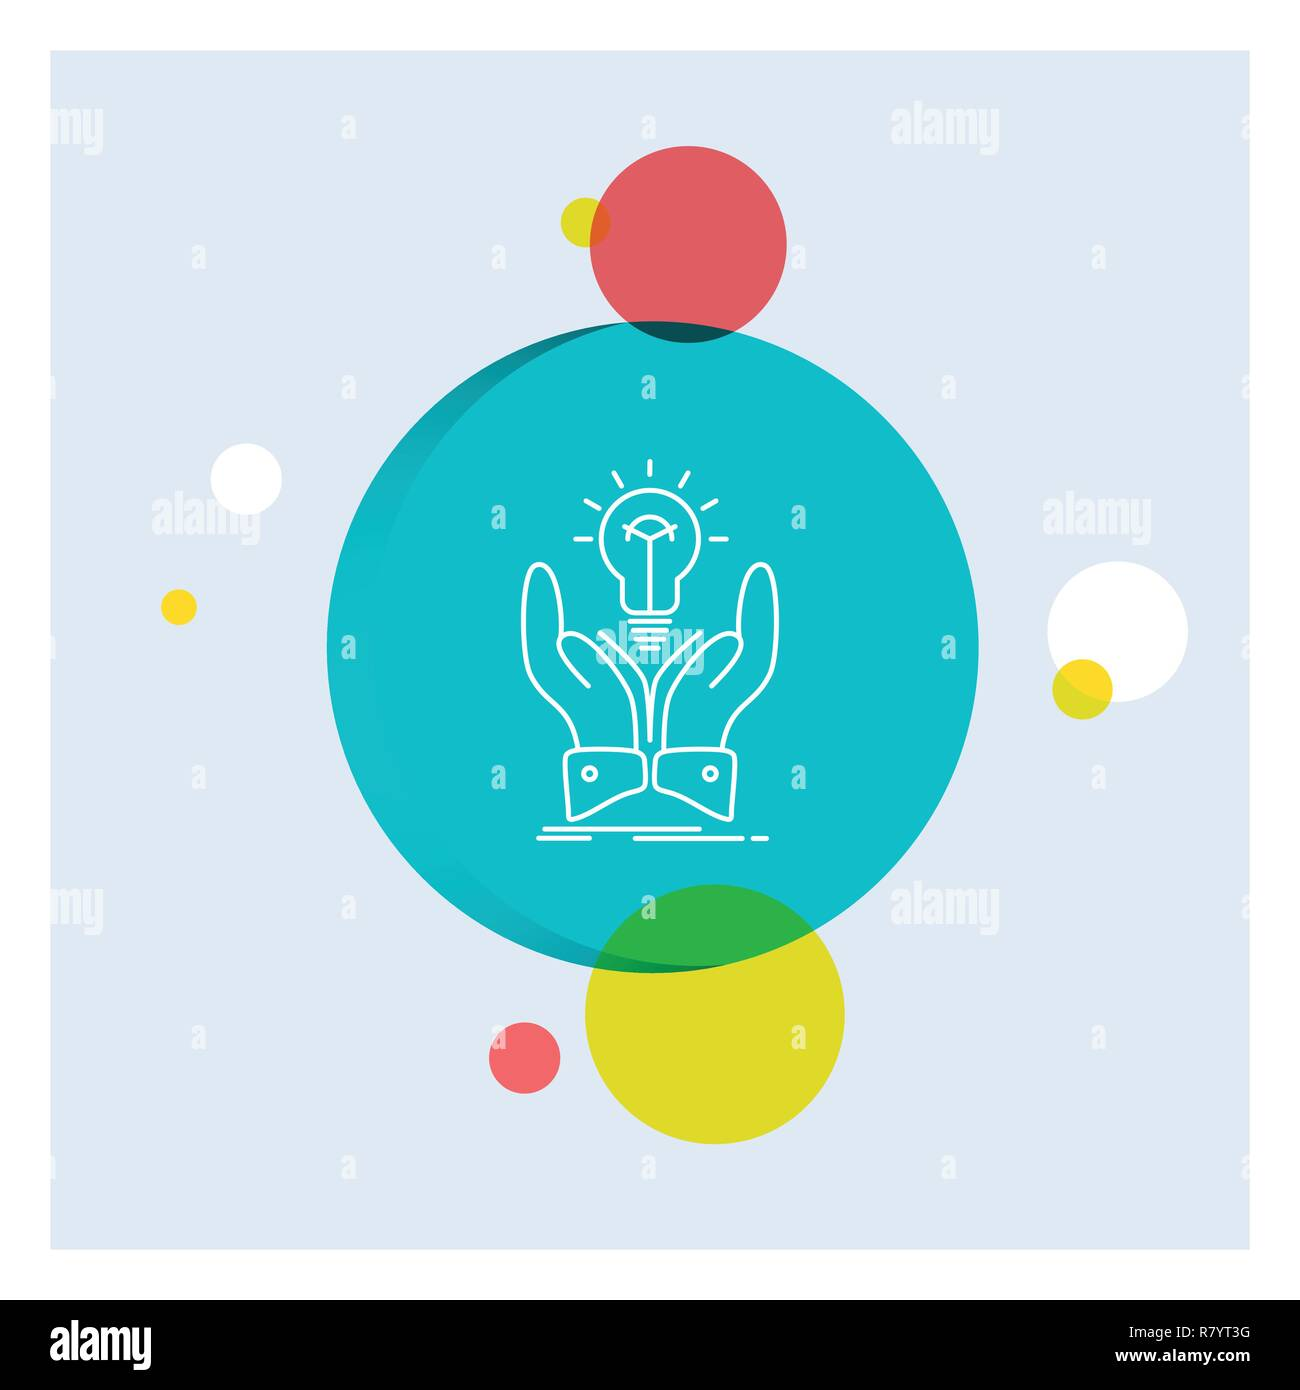 Creative Business People Brainstorming Drawing Stock Vector Images